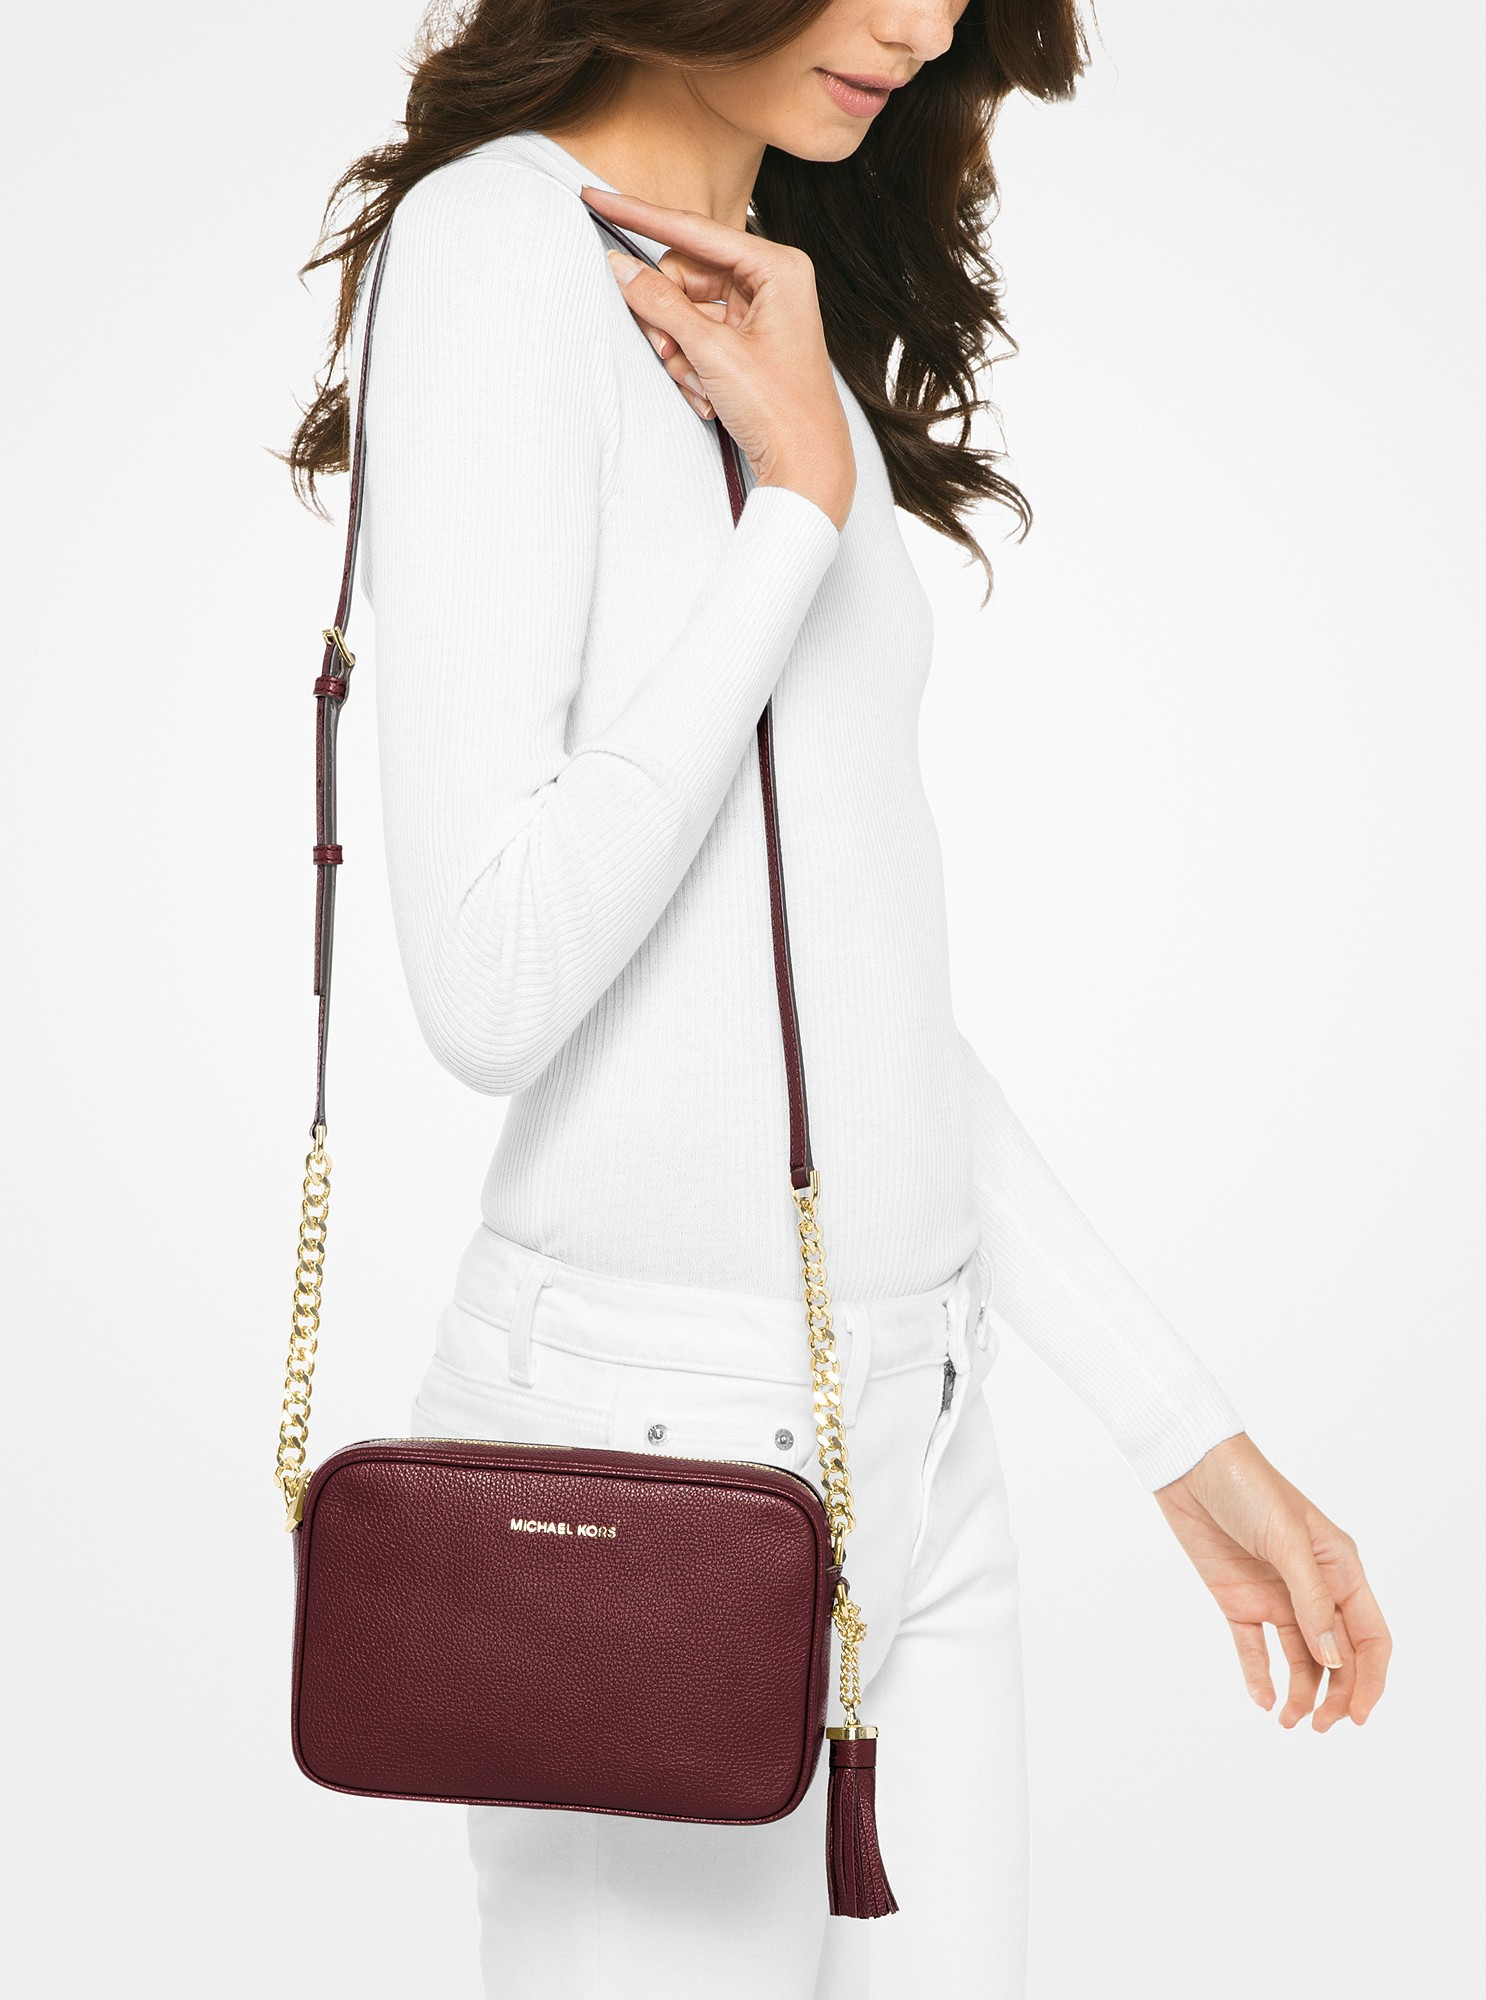 179630a626a1 Michael Kors Ginny Leather Crossbody - Oxblood